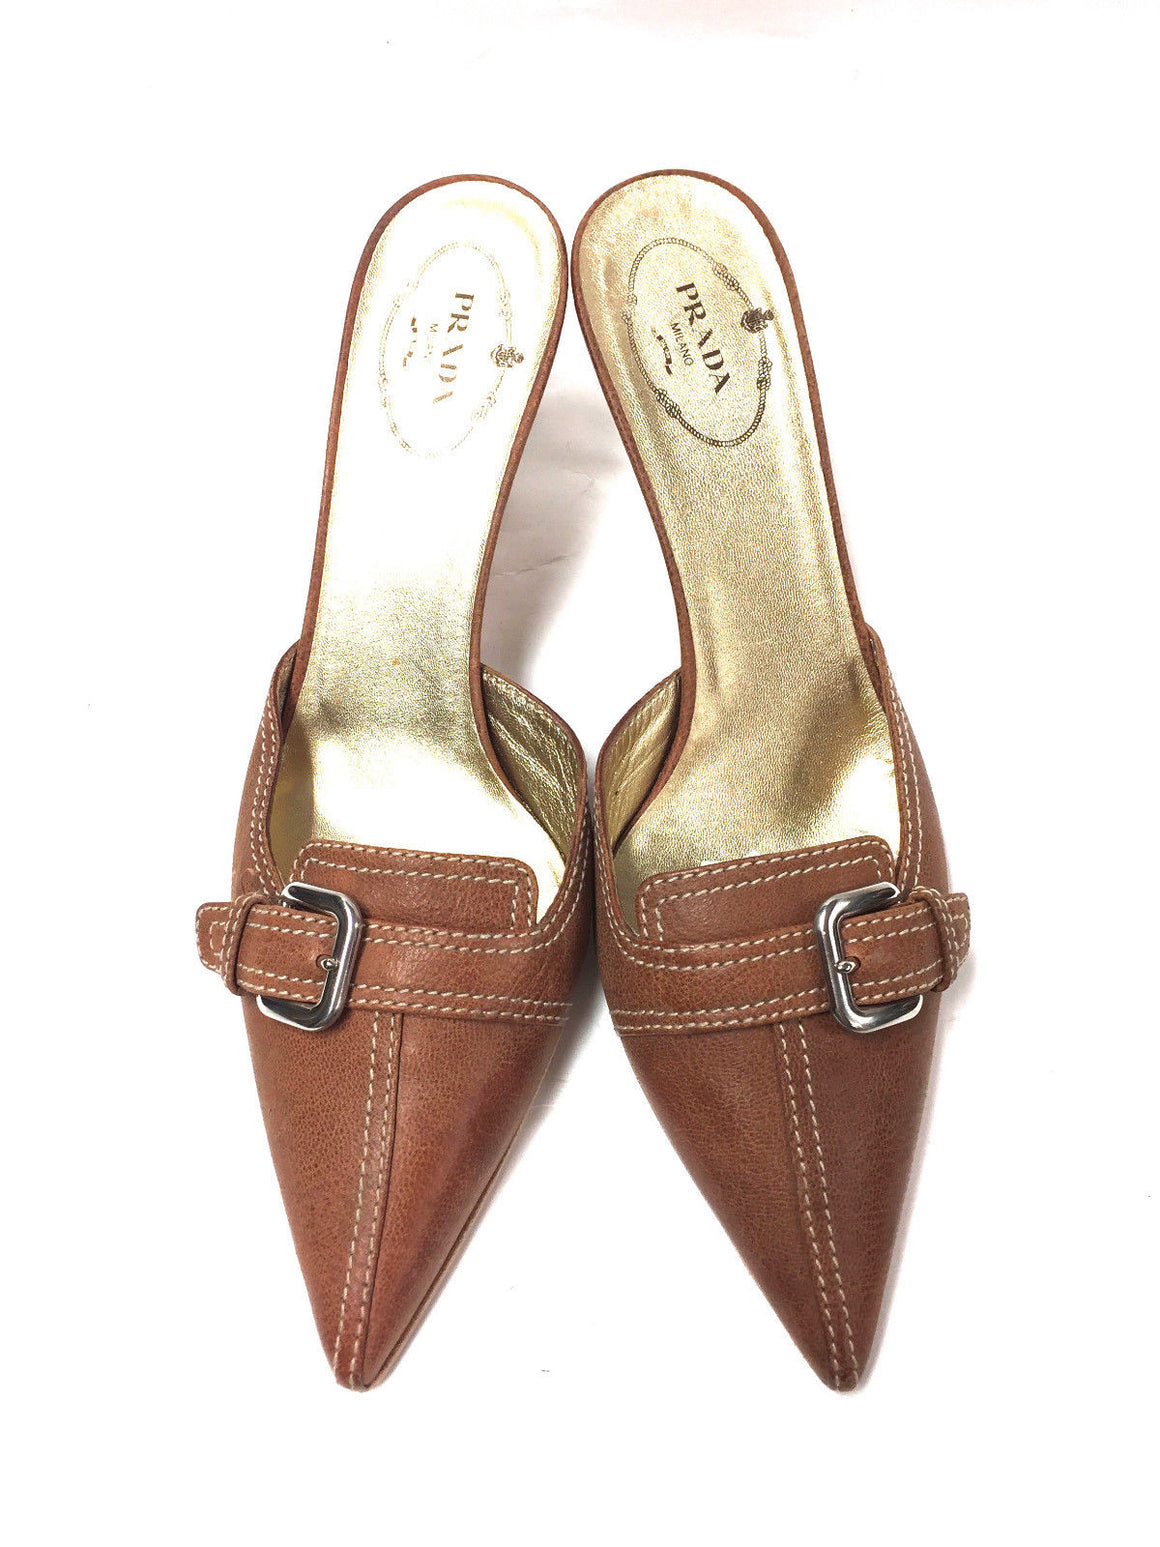 PRADA Tan Grained Leather Pointed-Toe Slip-On Heel Mules Size: 38.5 / 8.5